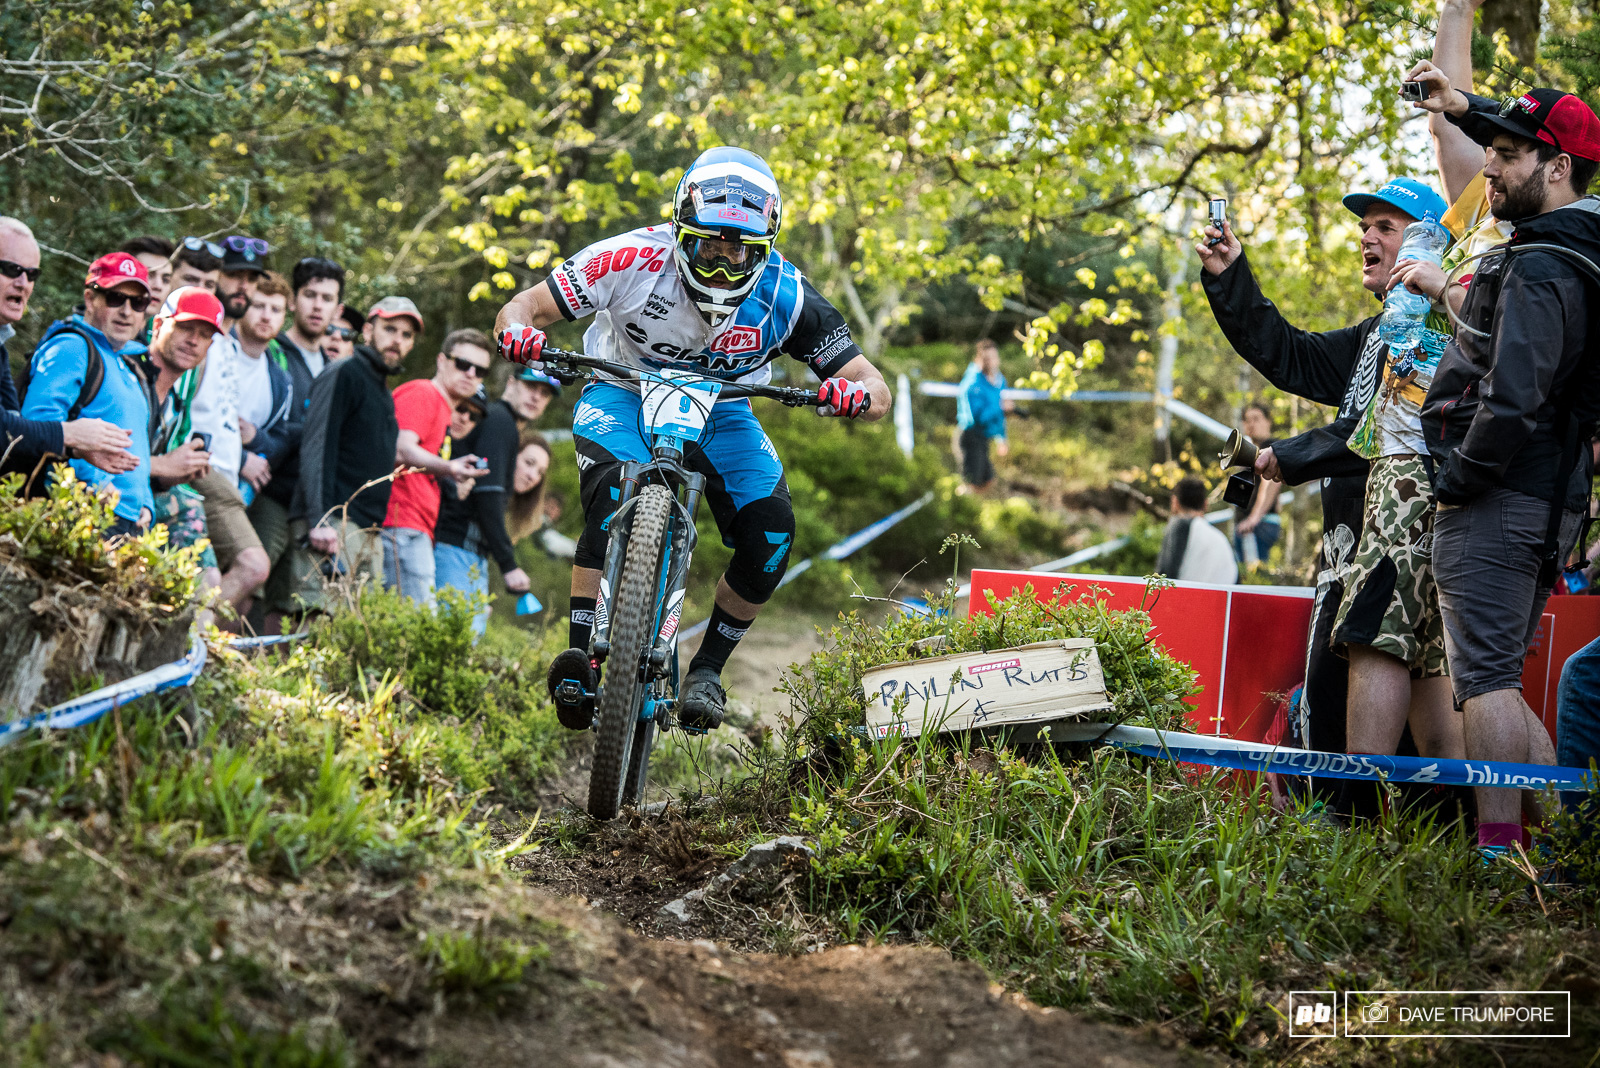 Yoann Barelli kept it consistent and inside the top 10 again this weekend.